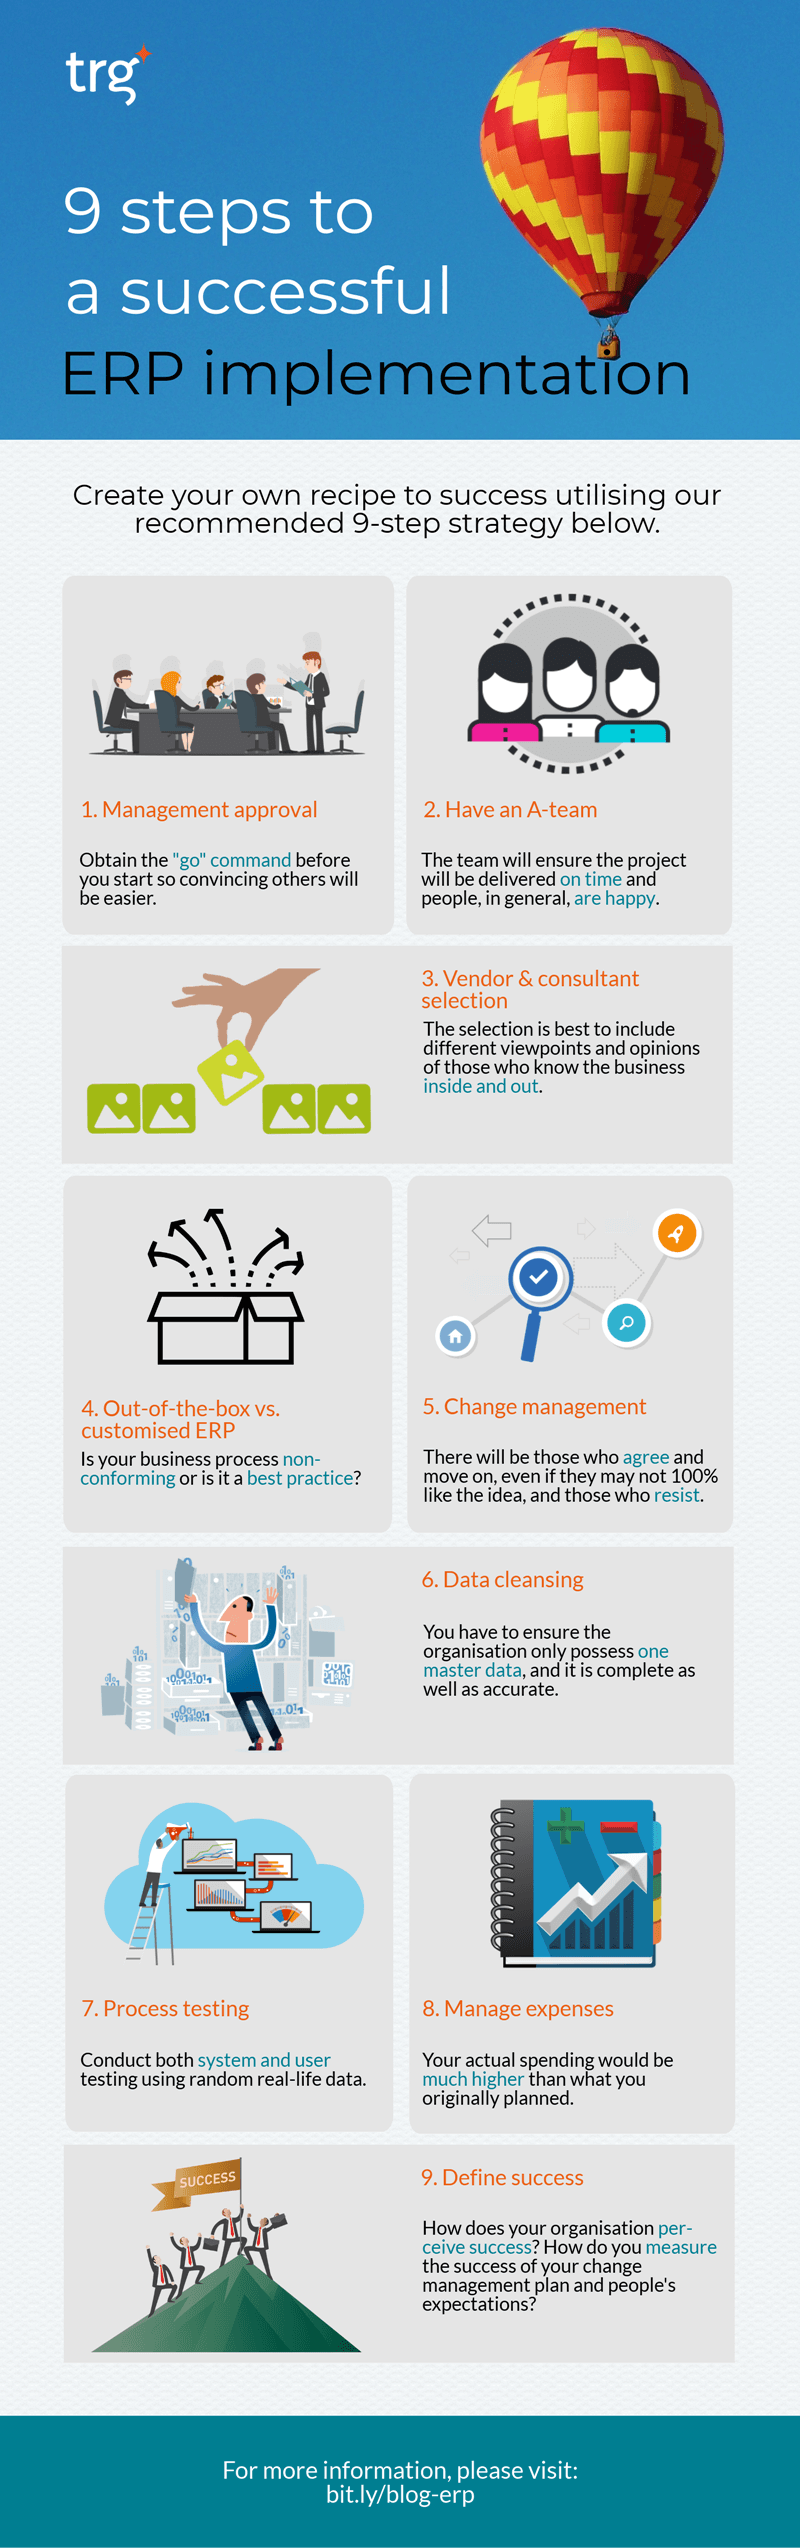 [Infographic] 9 Steps to a Successful ERP Implementation